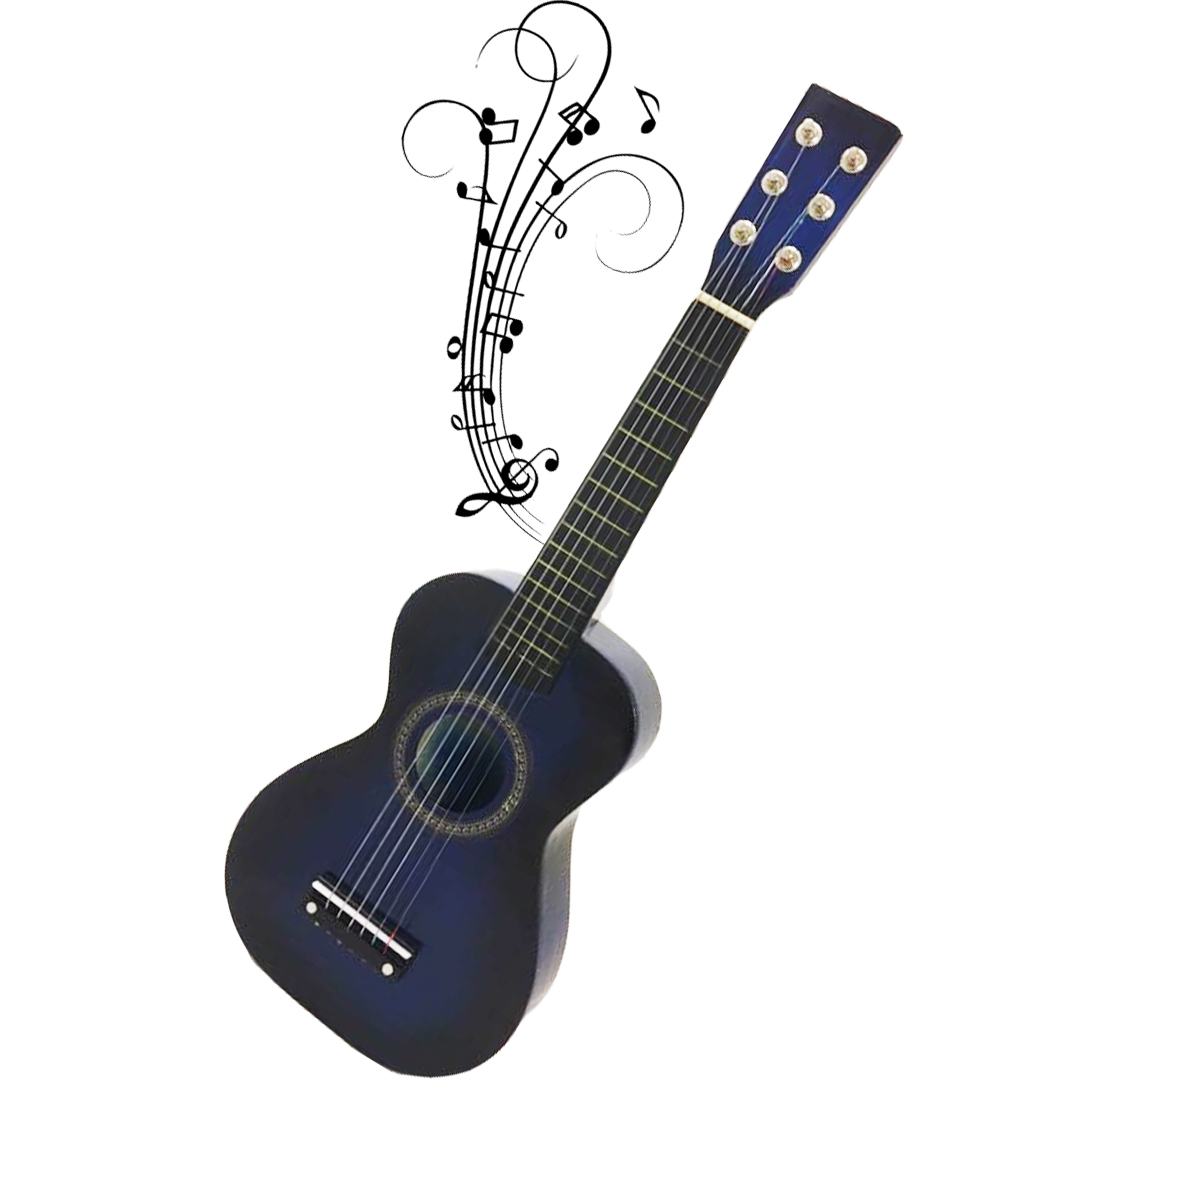 Guitarist xmas gifts for couples